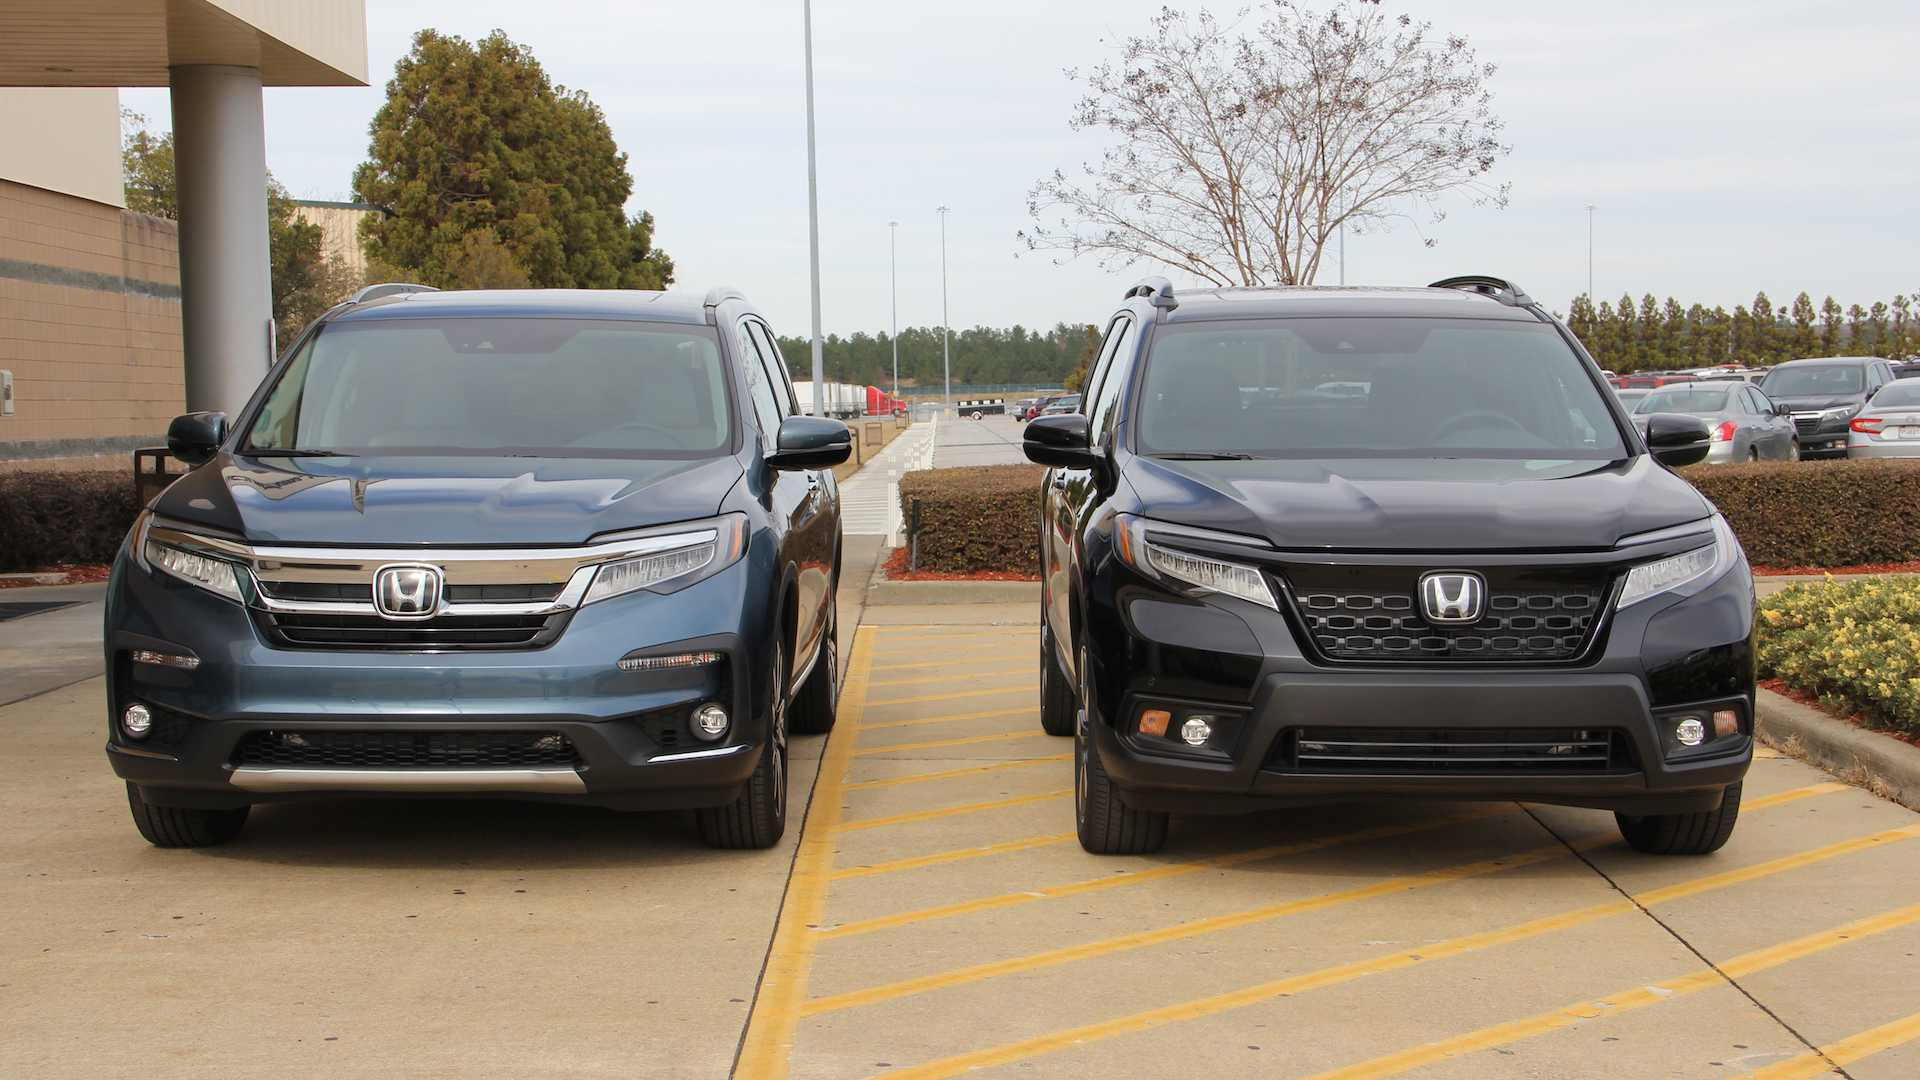 62 New 2019 Honda Pilot News Pictures